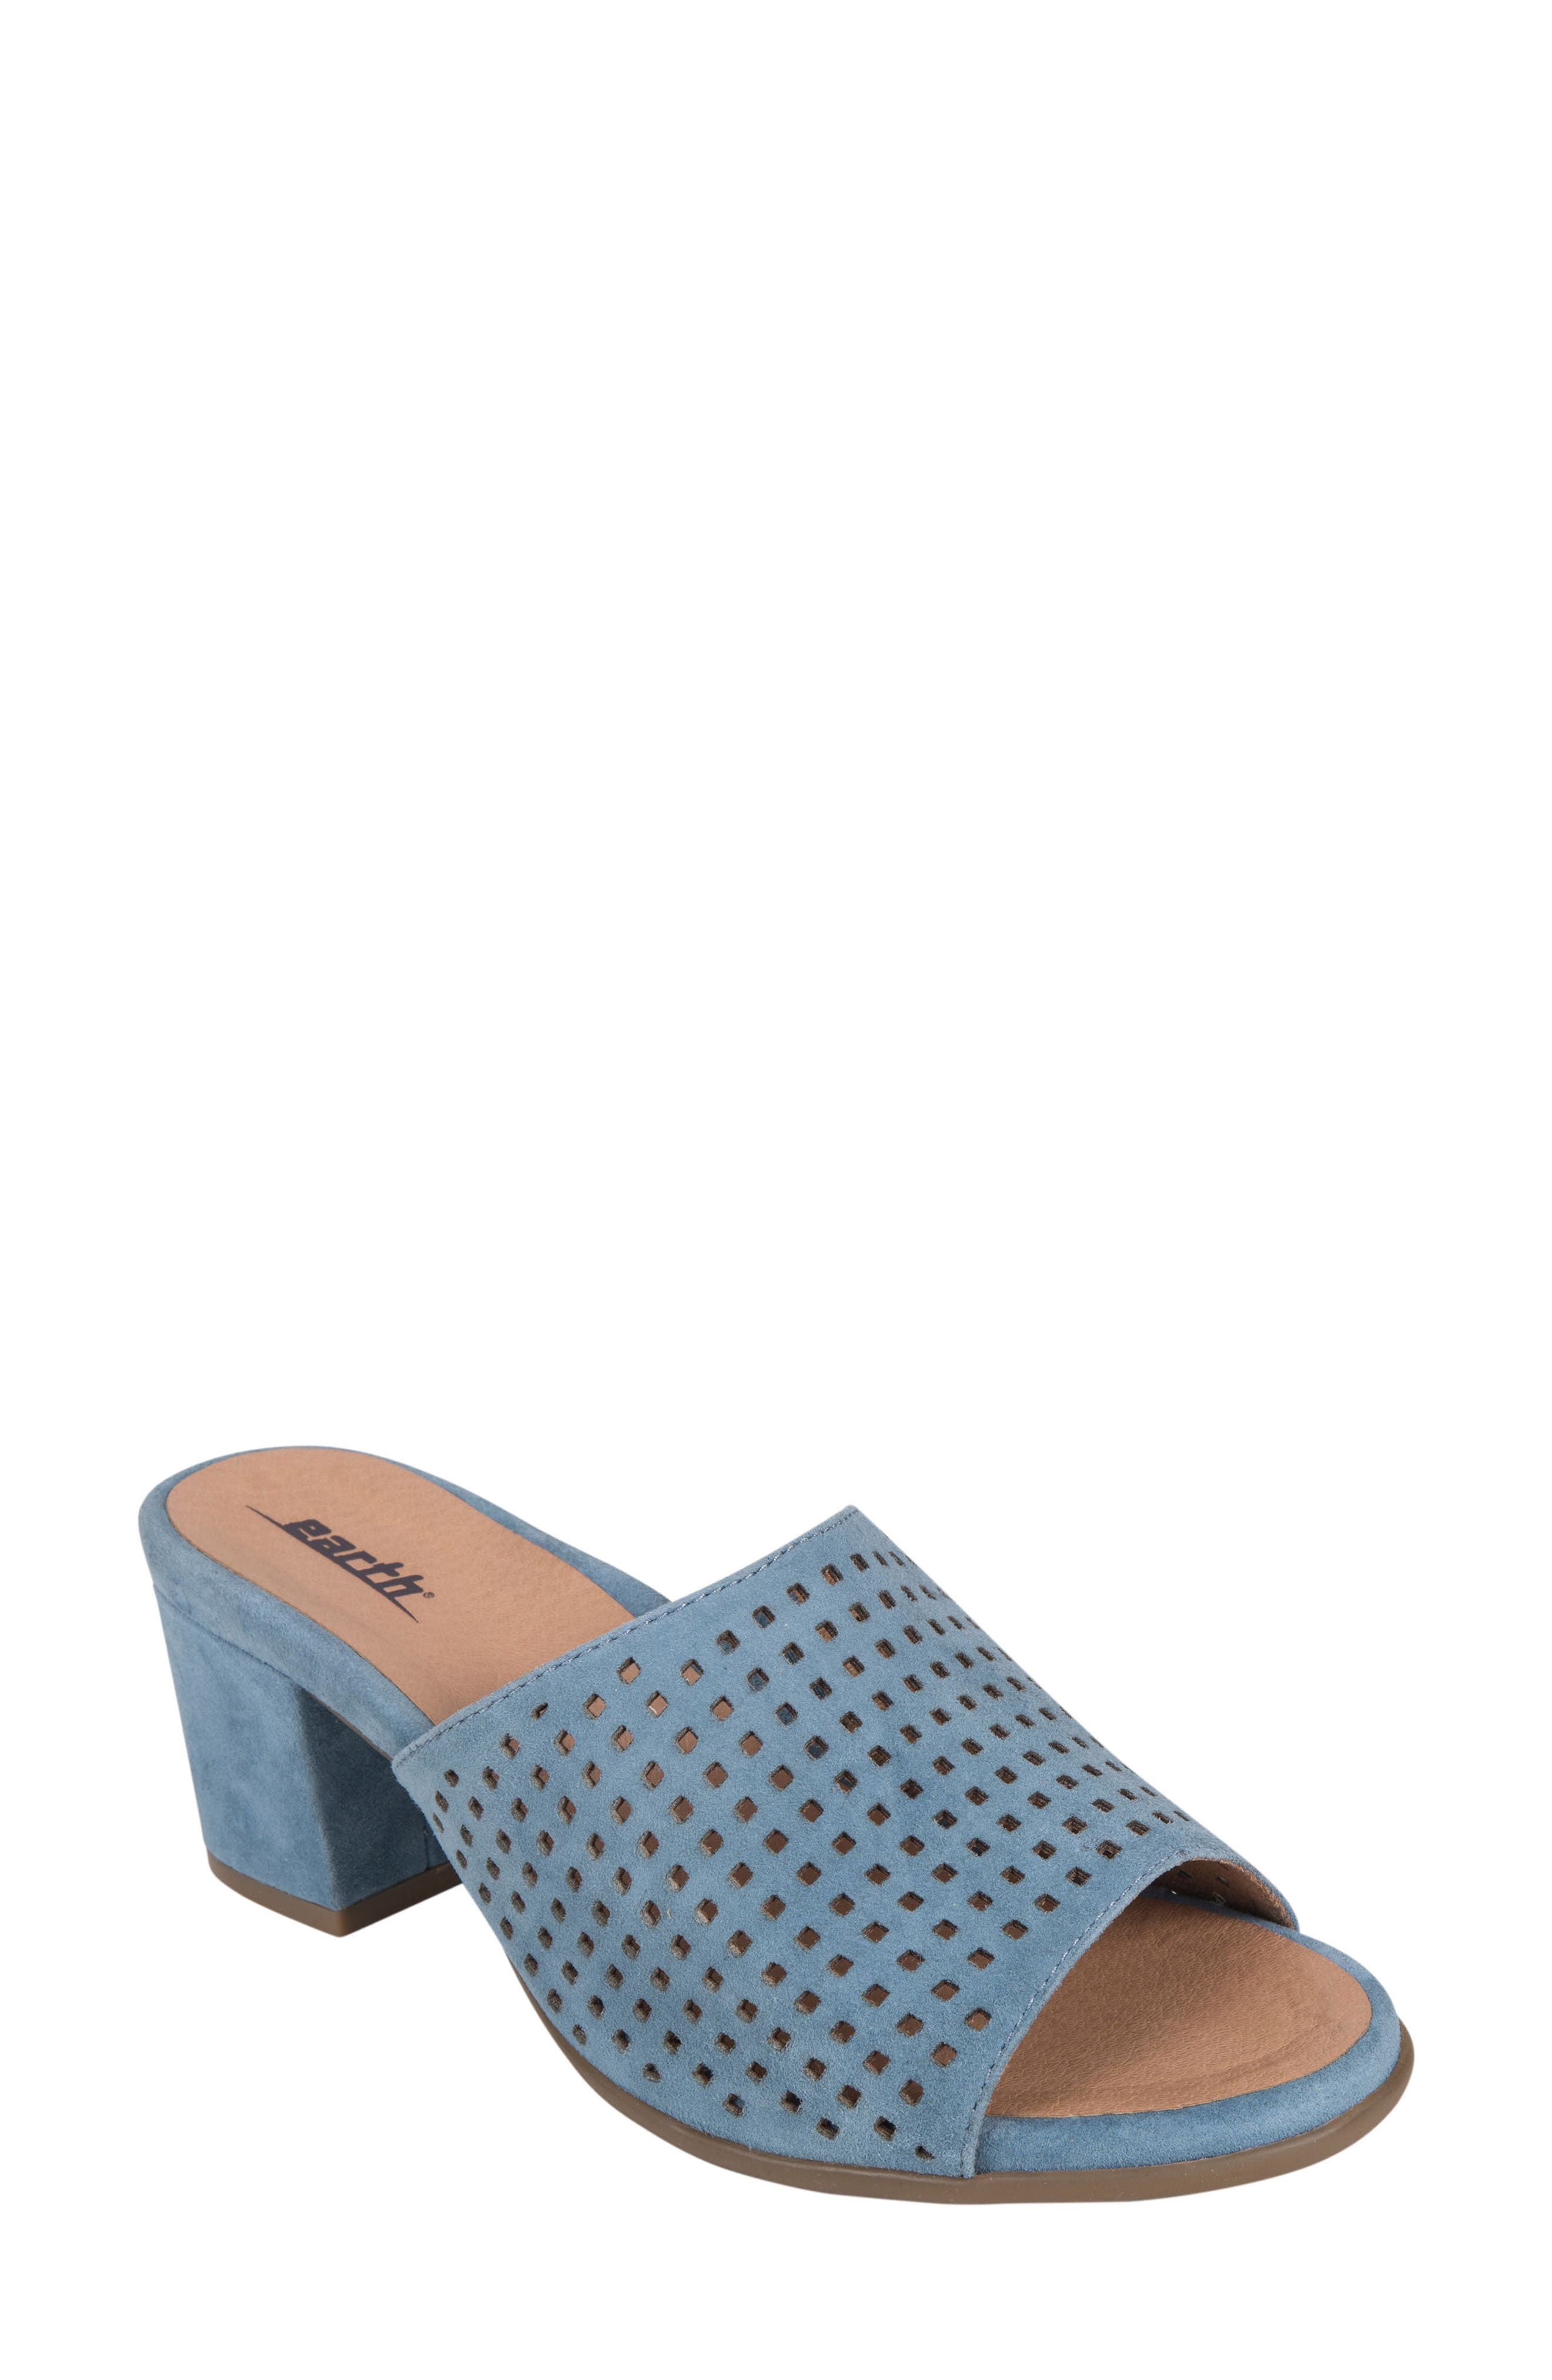 Ibiza Perforated Sandal,                         Main,                         color, SKY BLUE SUEDE